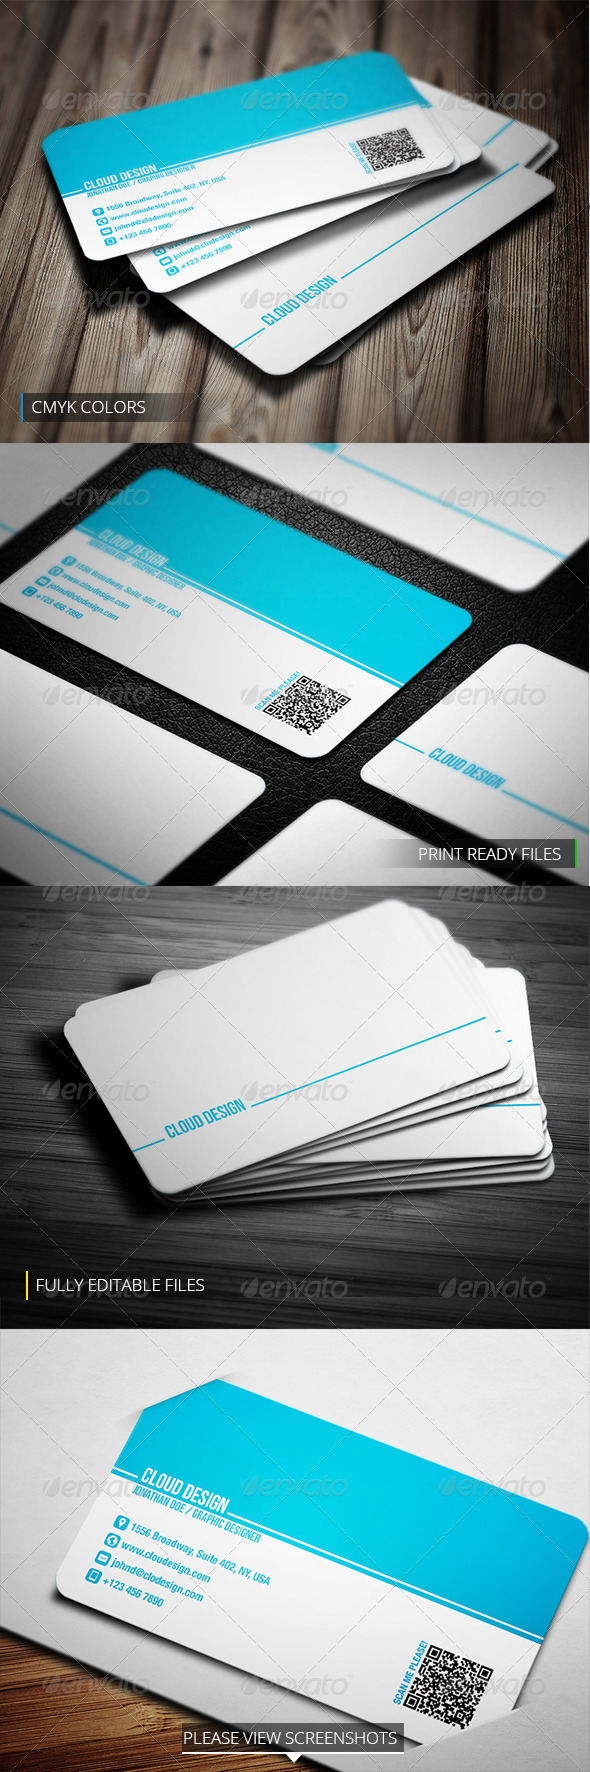 Business Card Printer Template